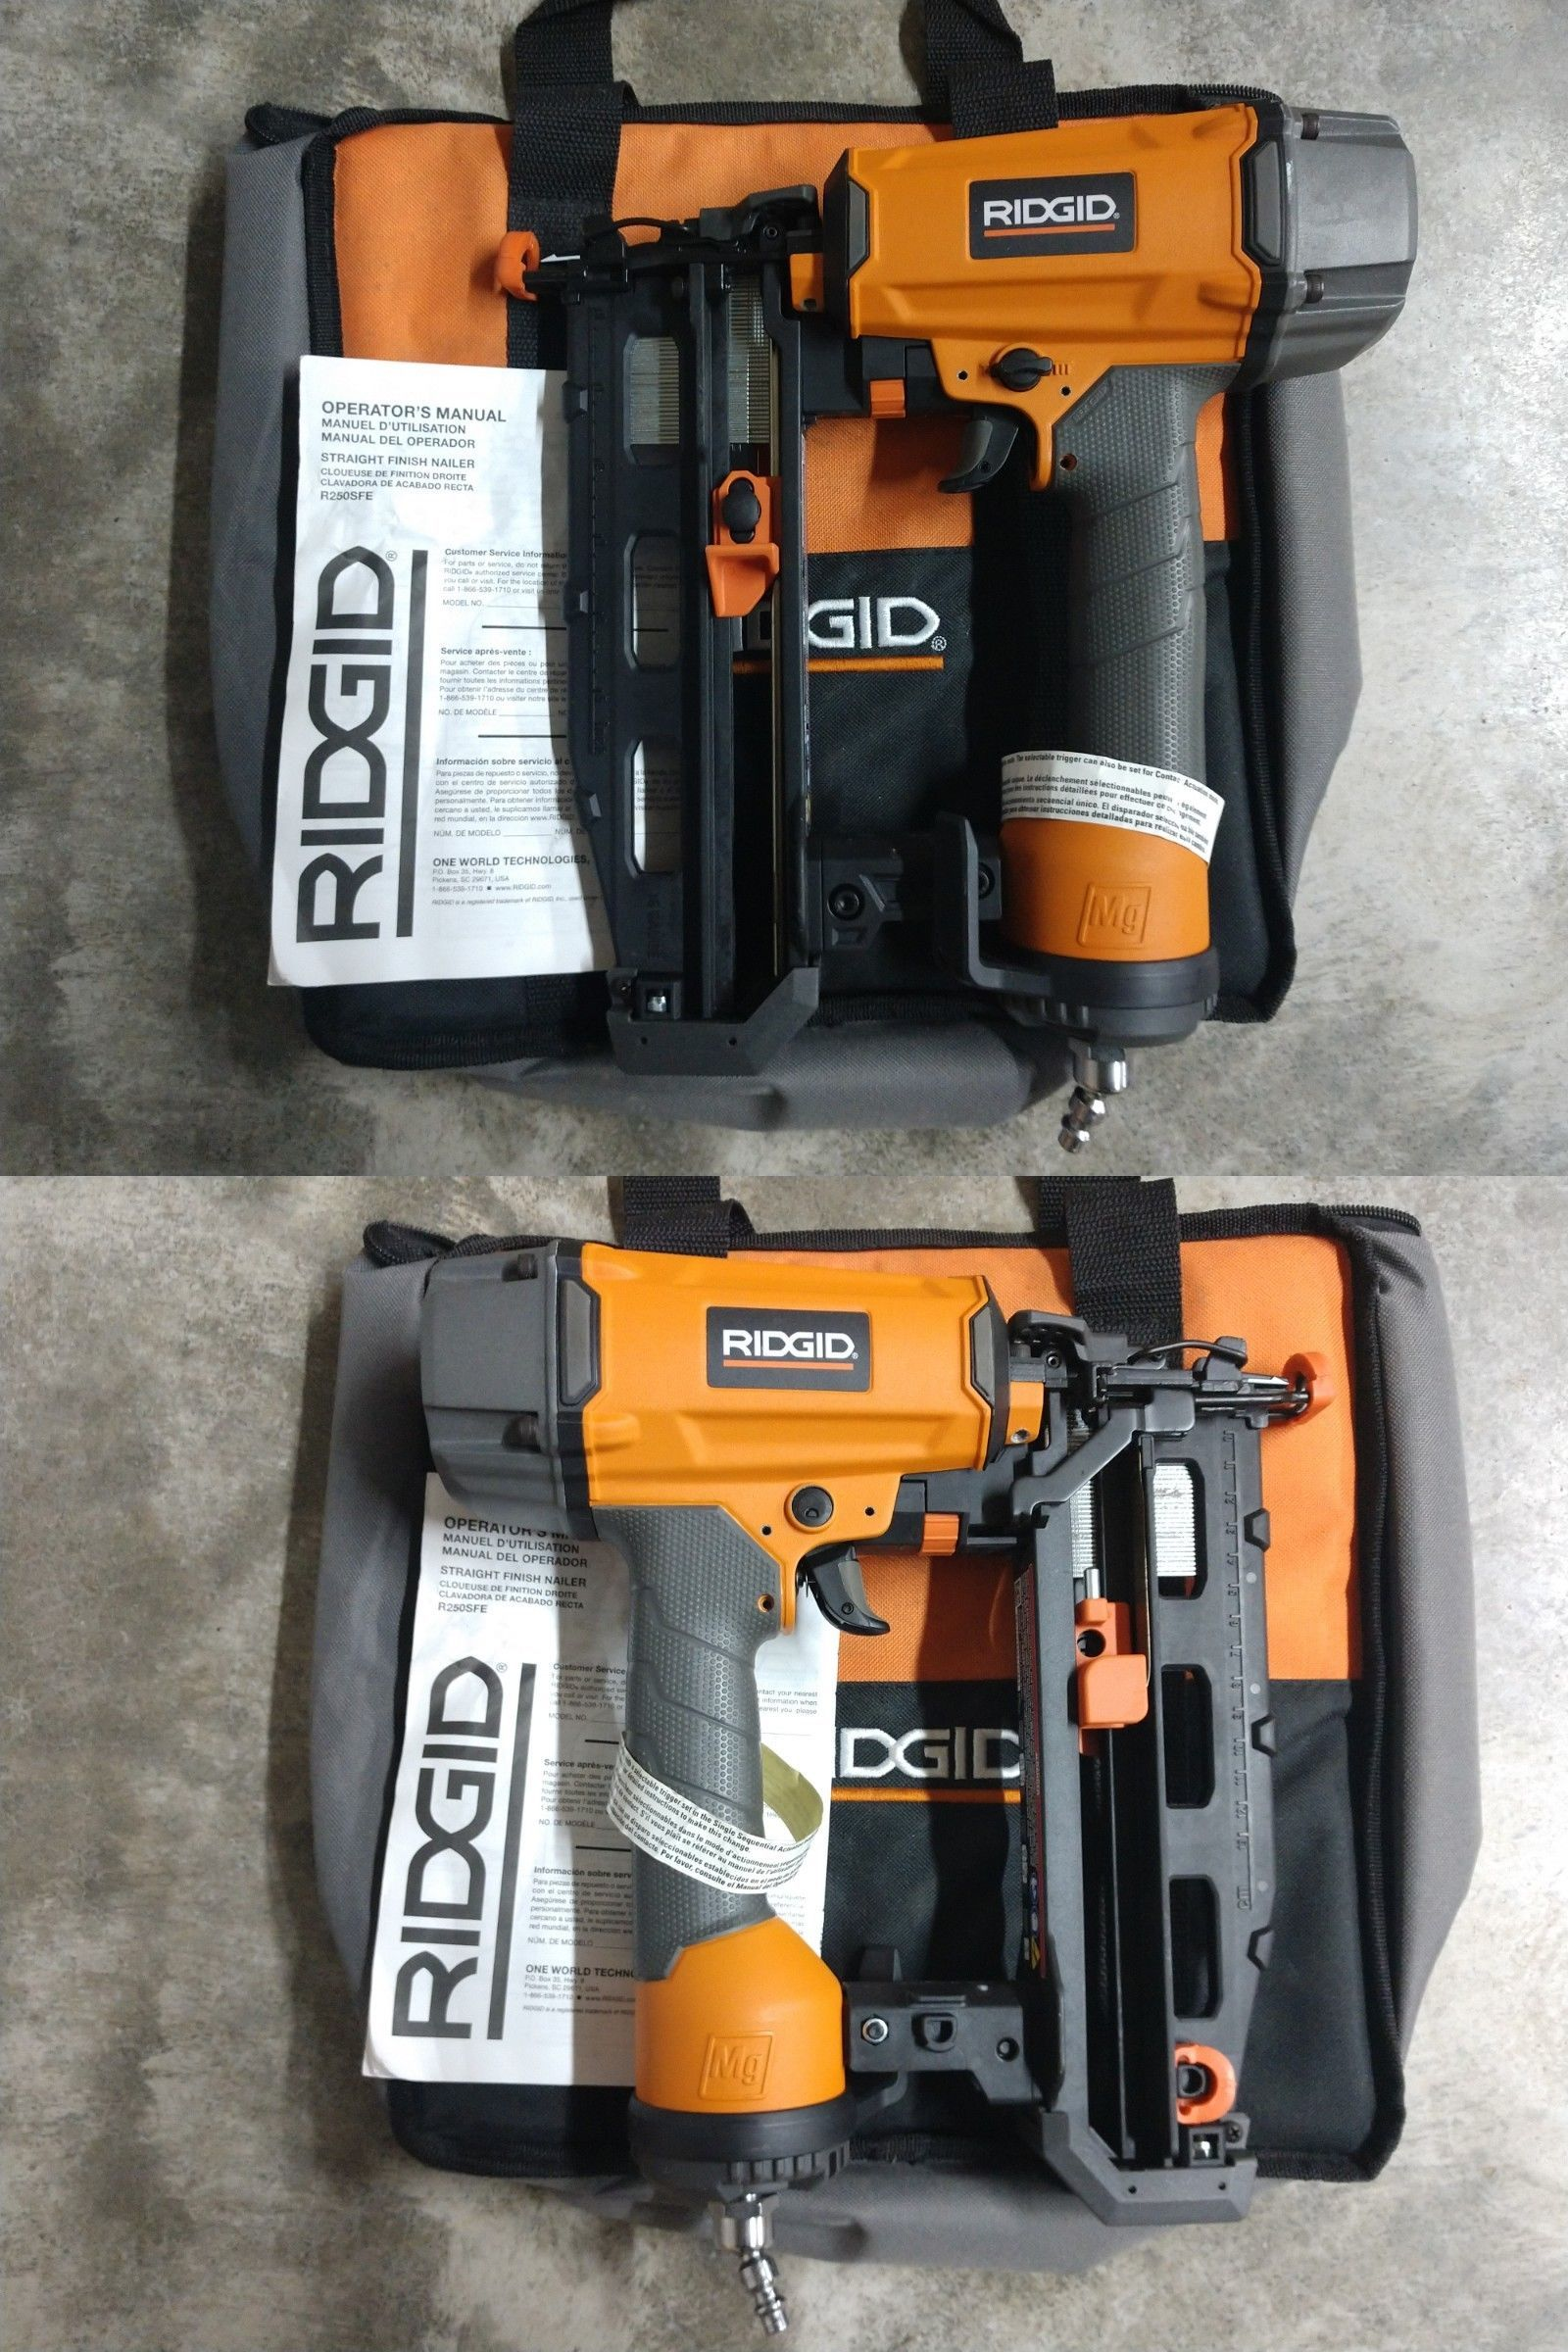 Nail And Staple Guns 122828 New Ridgid 16 Gauge Finish Nailer Model R250sfe Buy It Now Only 119 99 On Ebay Staple Ri Finish Nailer Nailer Staple Guns